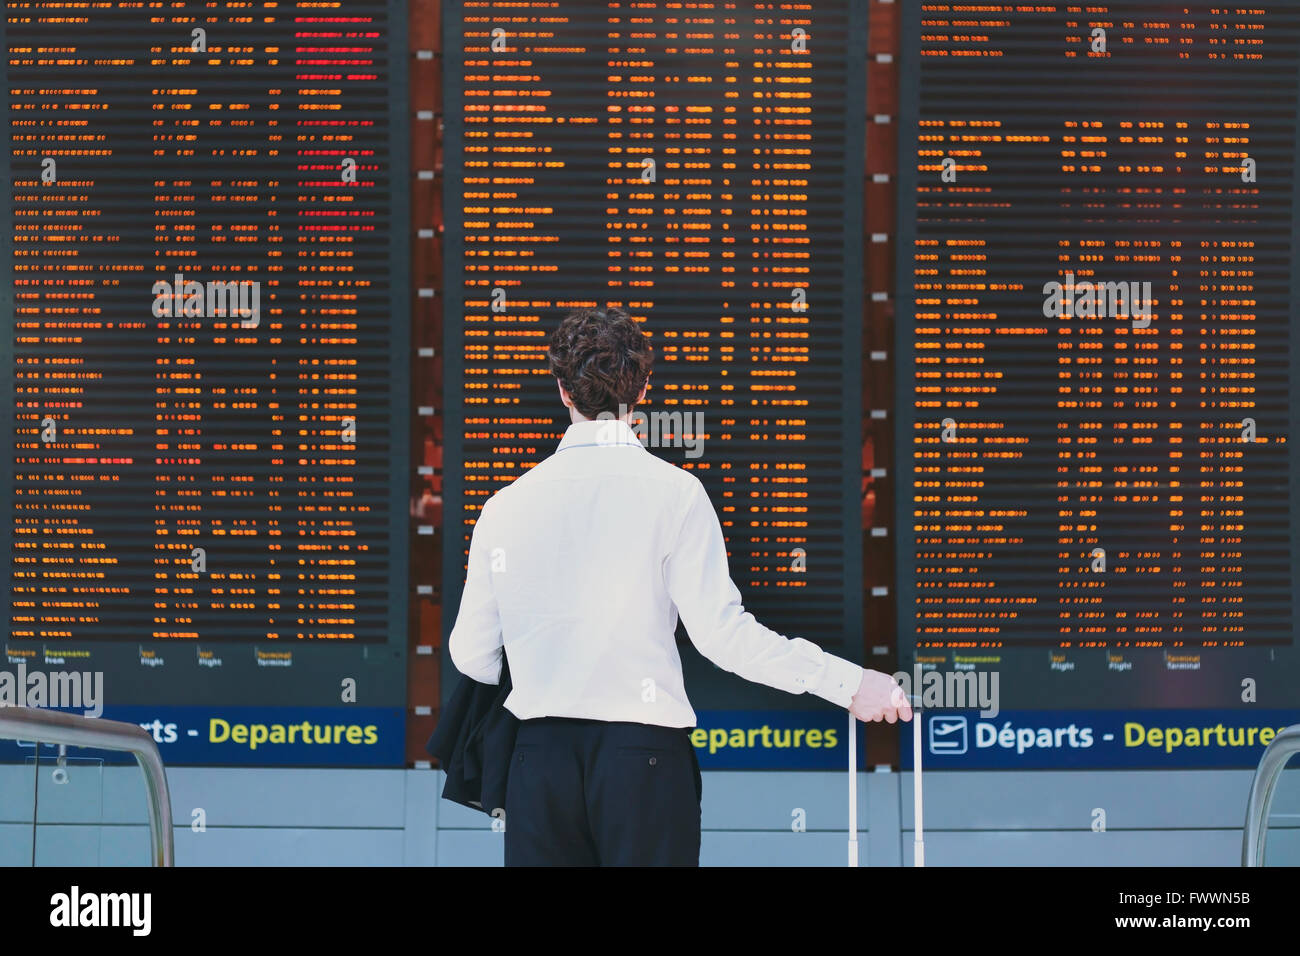 people in the airport, business travel, passenger looking at timetable screen board - Stock Image